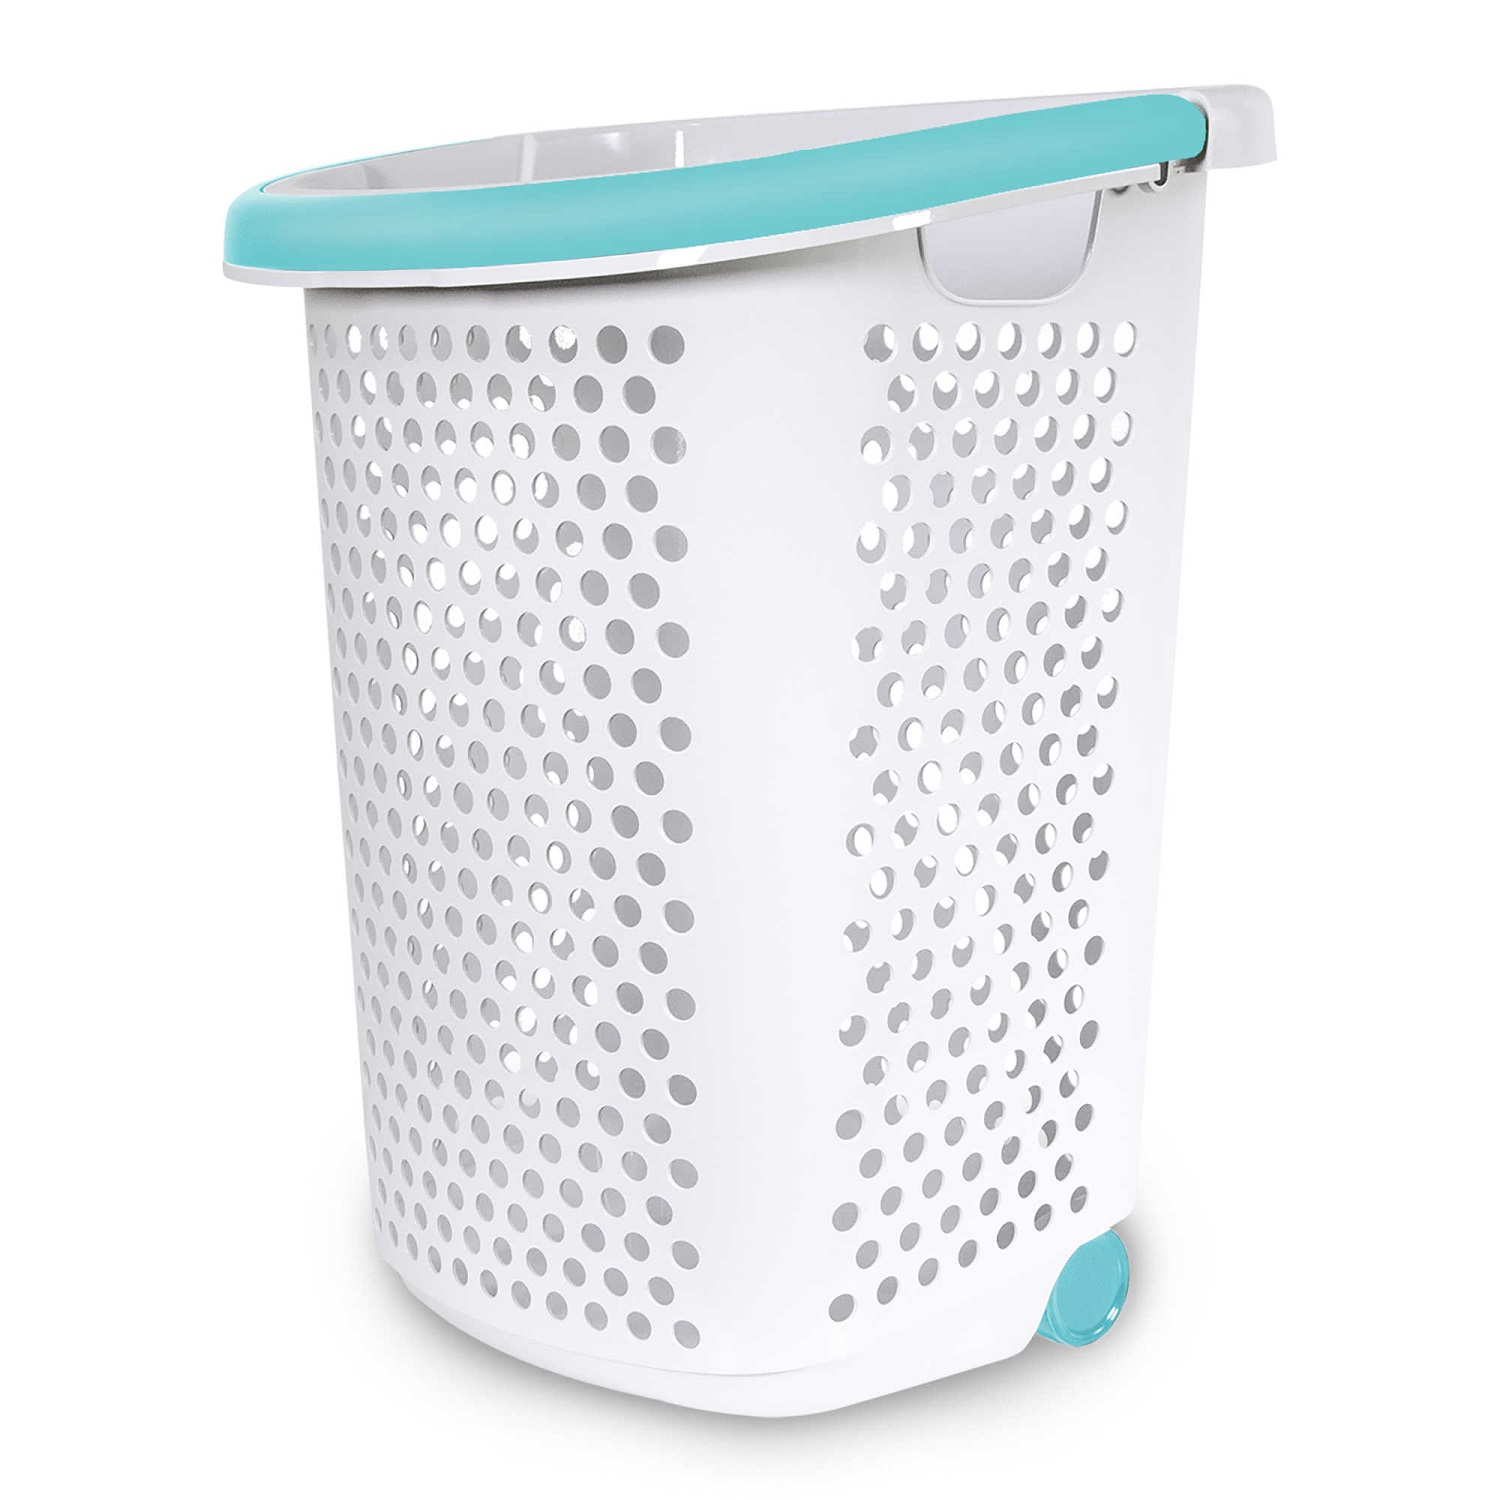 Home Logic 2.0-Bu. Rolling Hamper in White - 1 ct